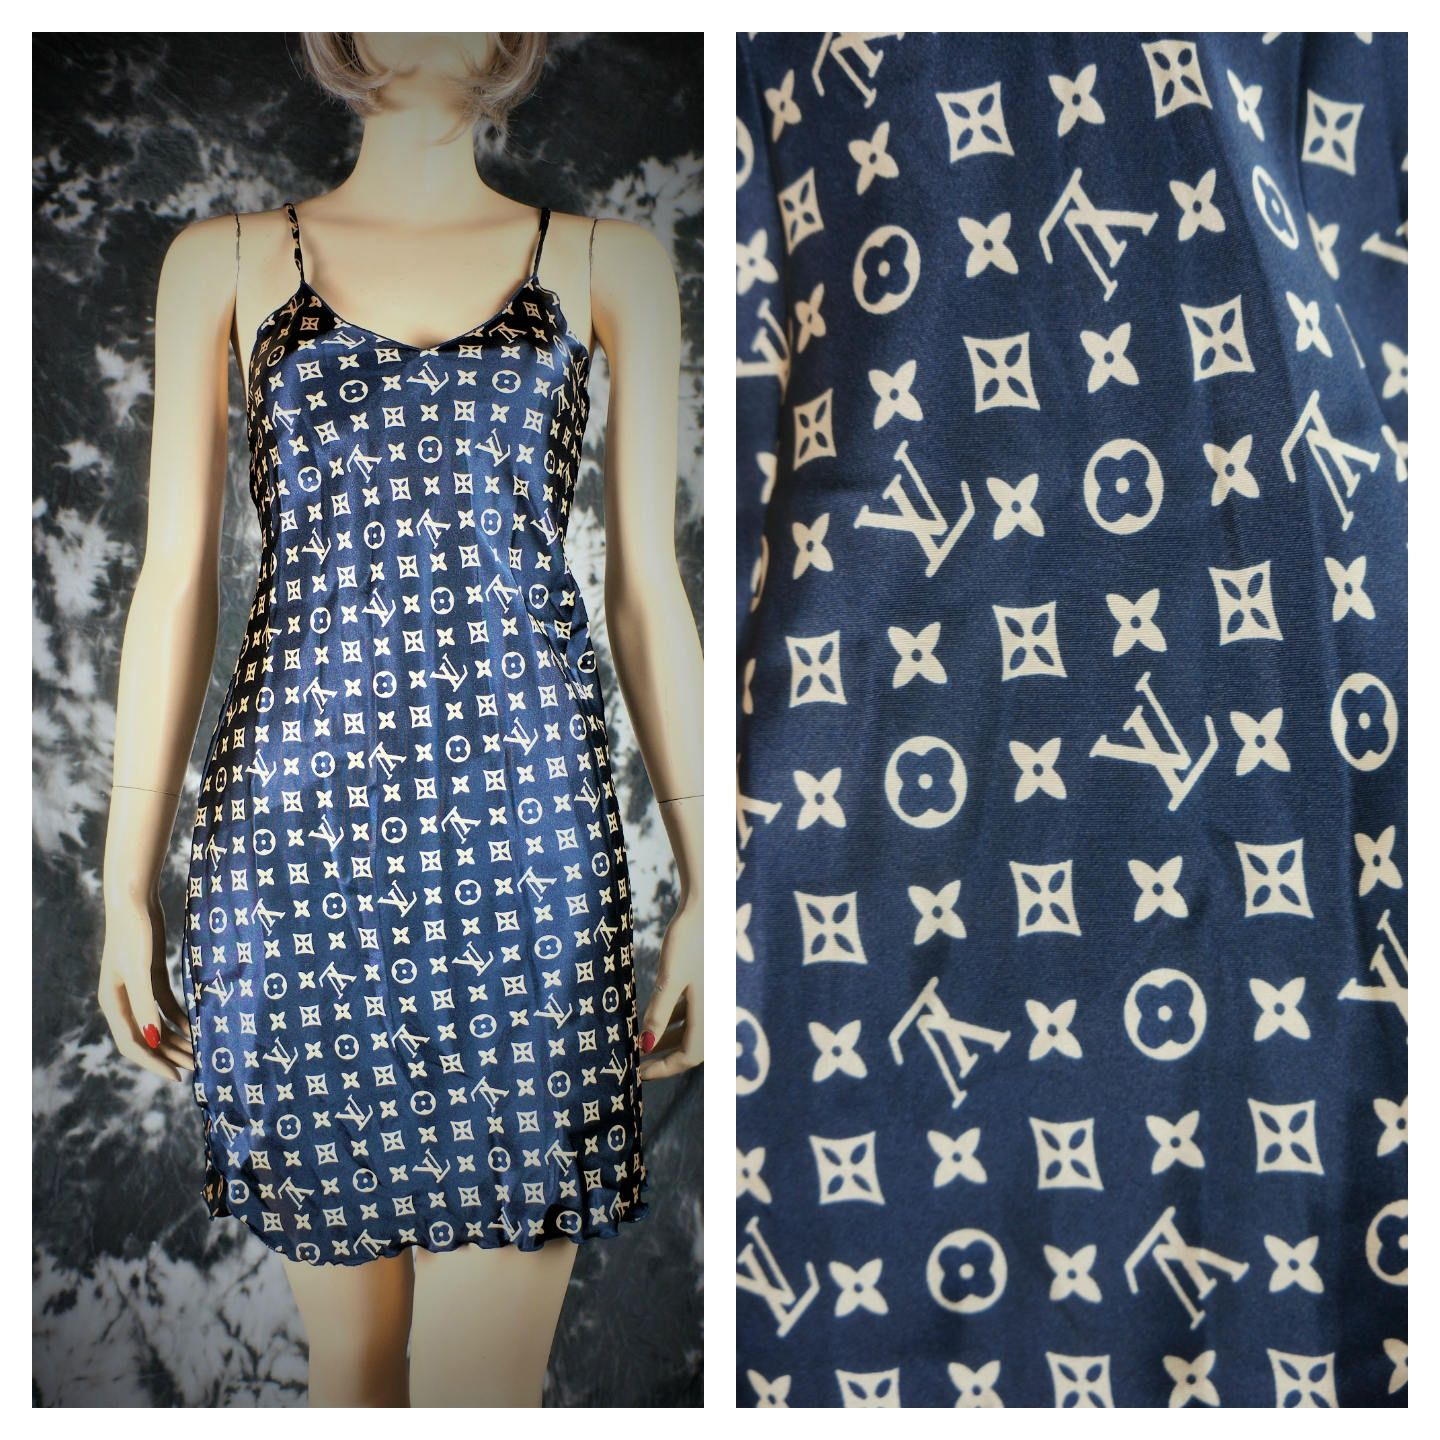 06a52210c15b5 Louis Vuitton Signature Nightgown   Vng Louis Vuitton   Vng Designer  Peignoir   Louis Vuitton Couture Clothing   Chanel   Prada   LV Slip by ...